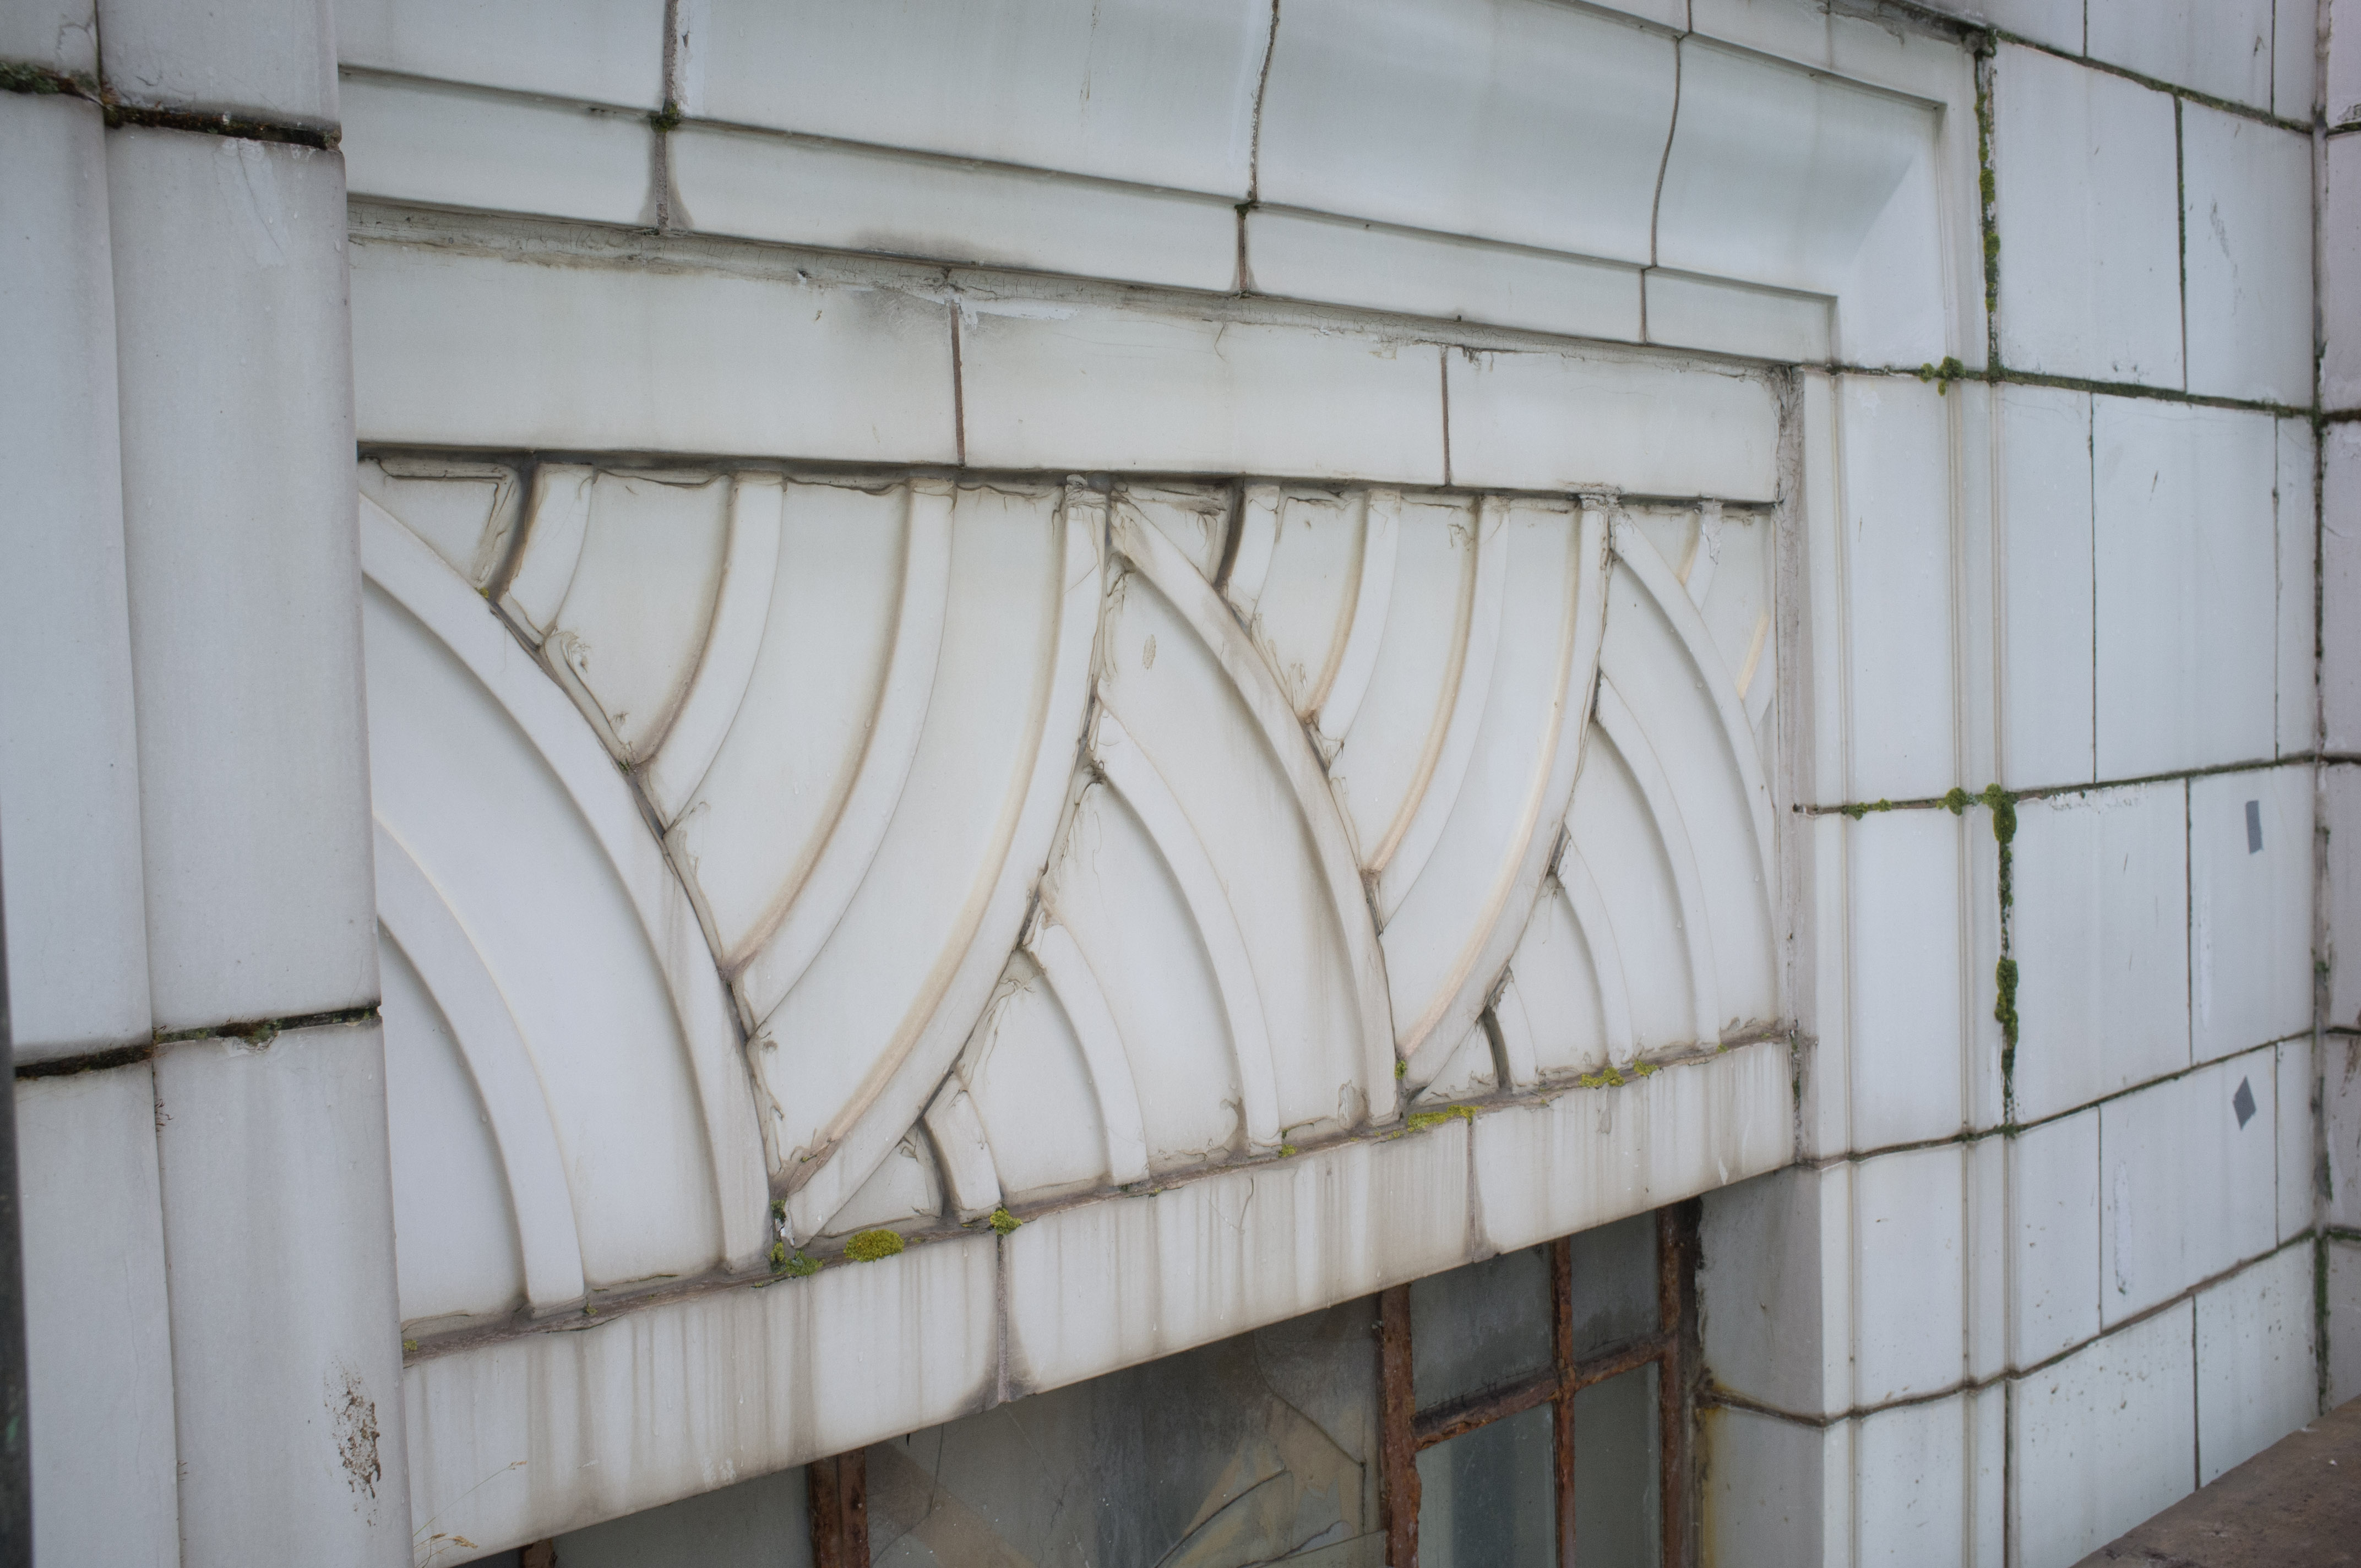 Window head and lintol detail